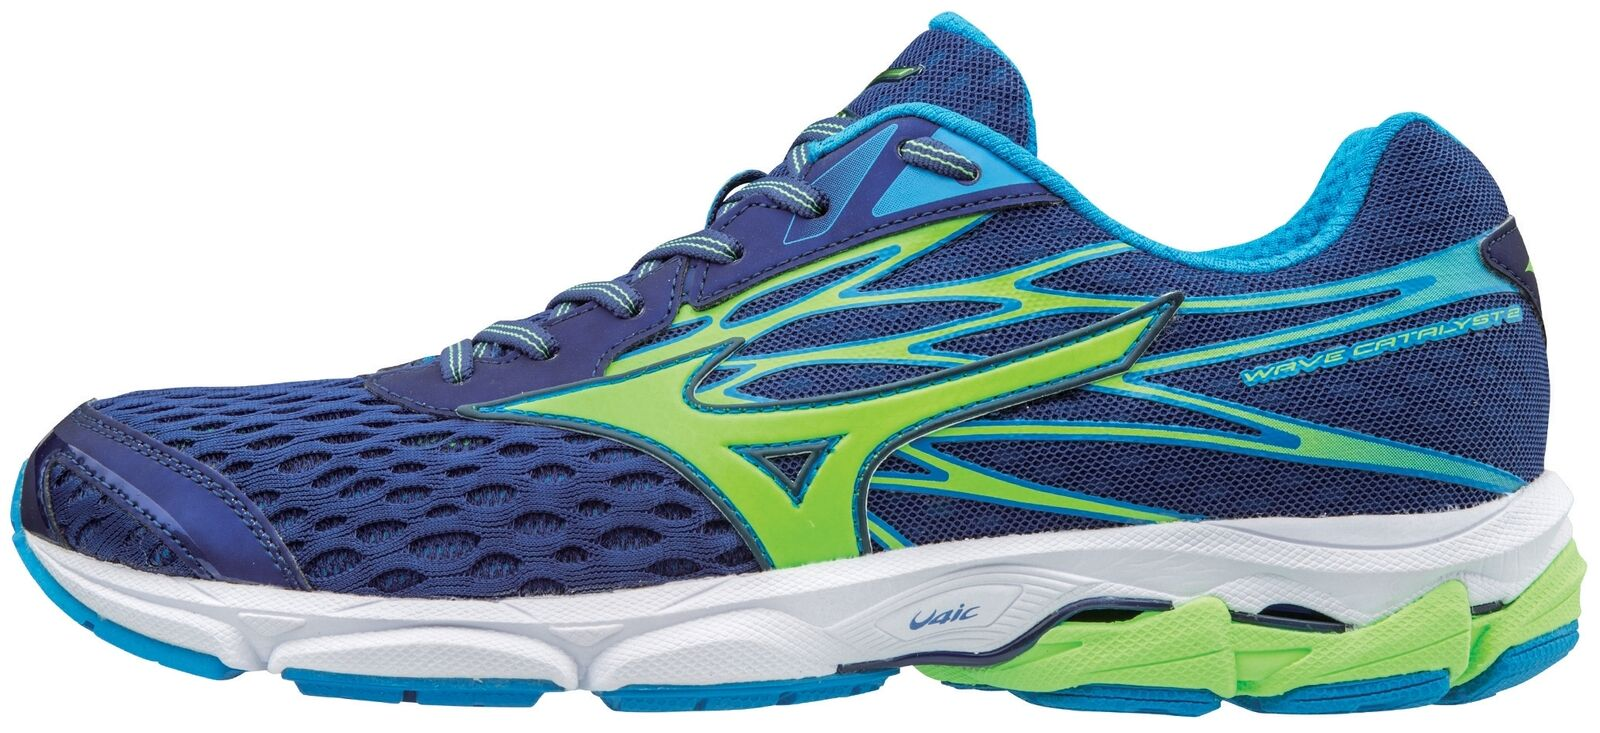 Mizuno Wave Catalyst 2 Mens Running shoes - bluee